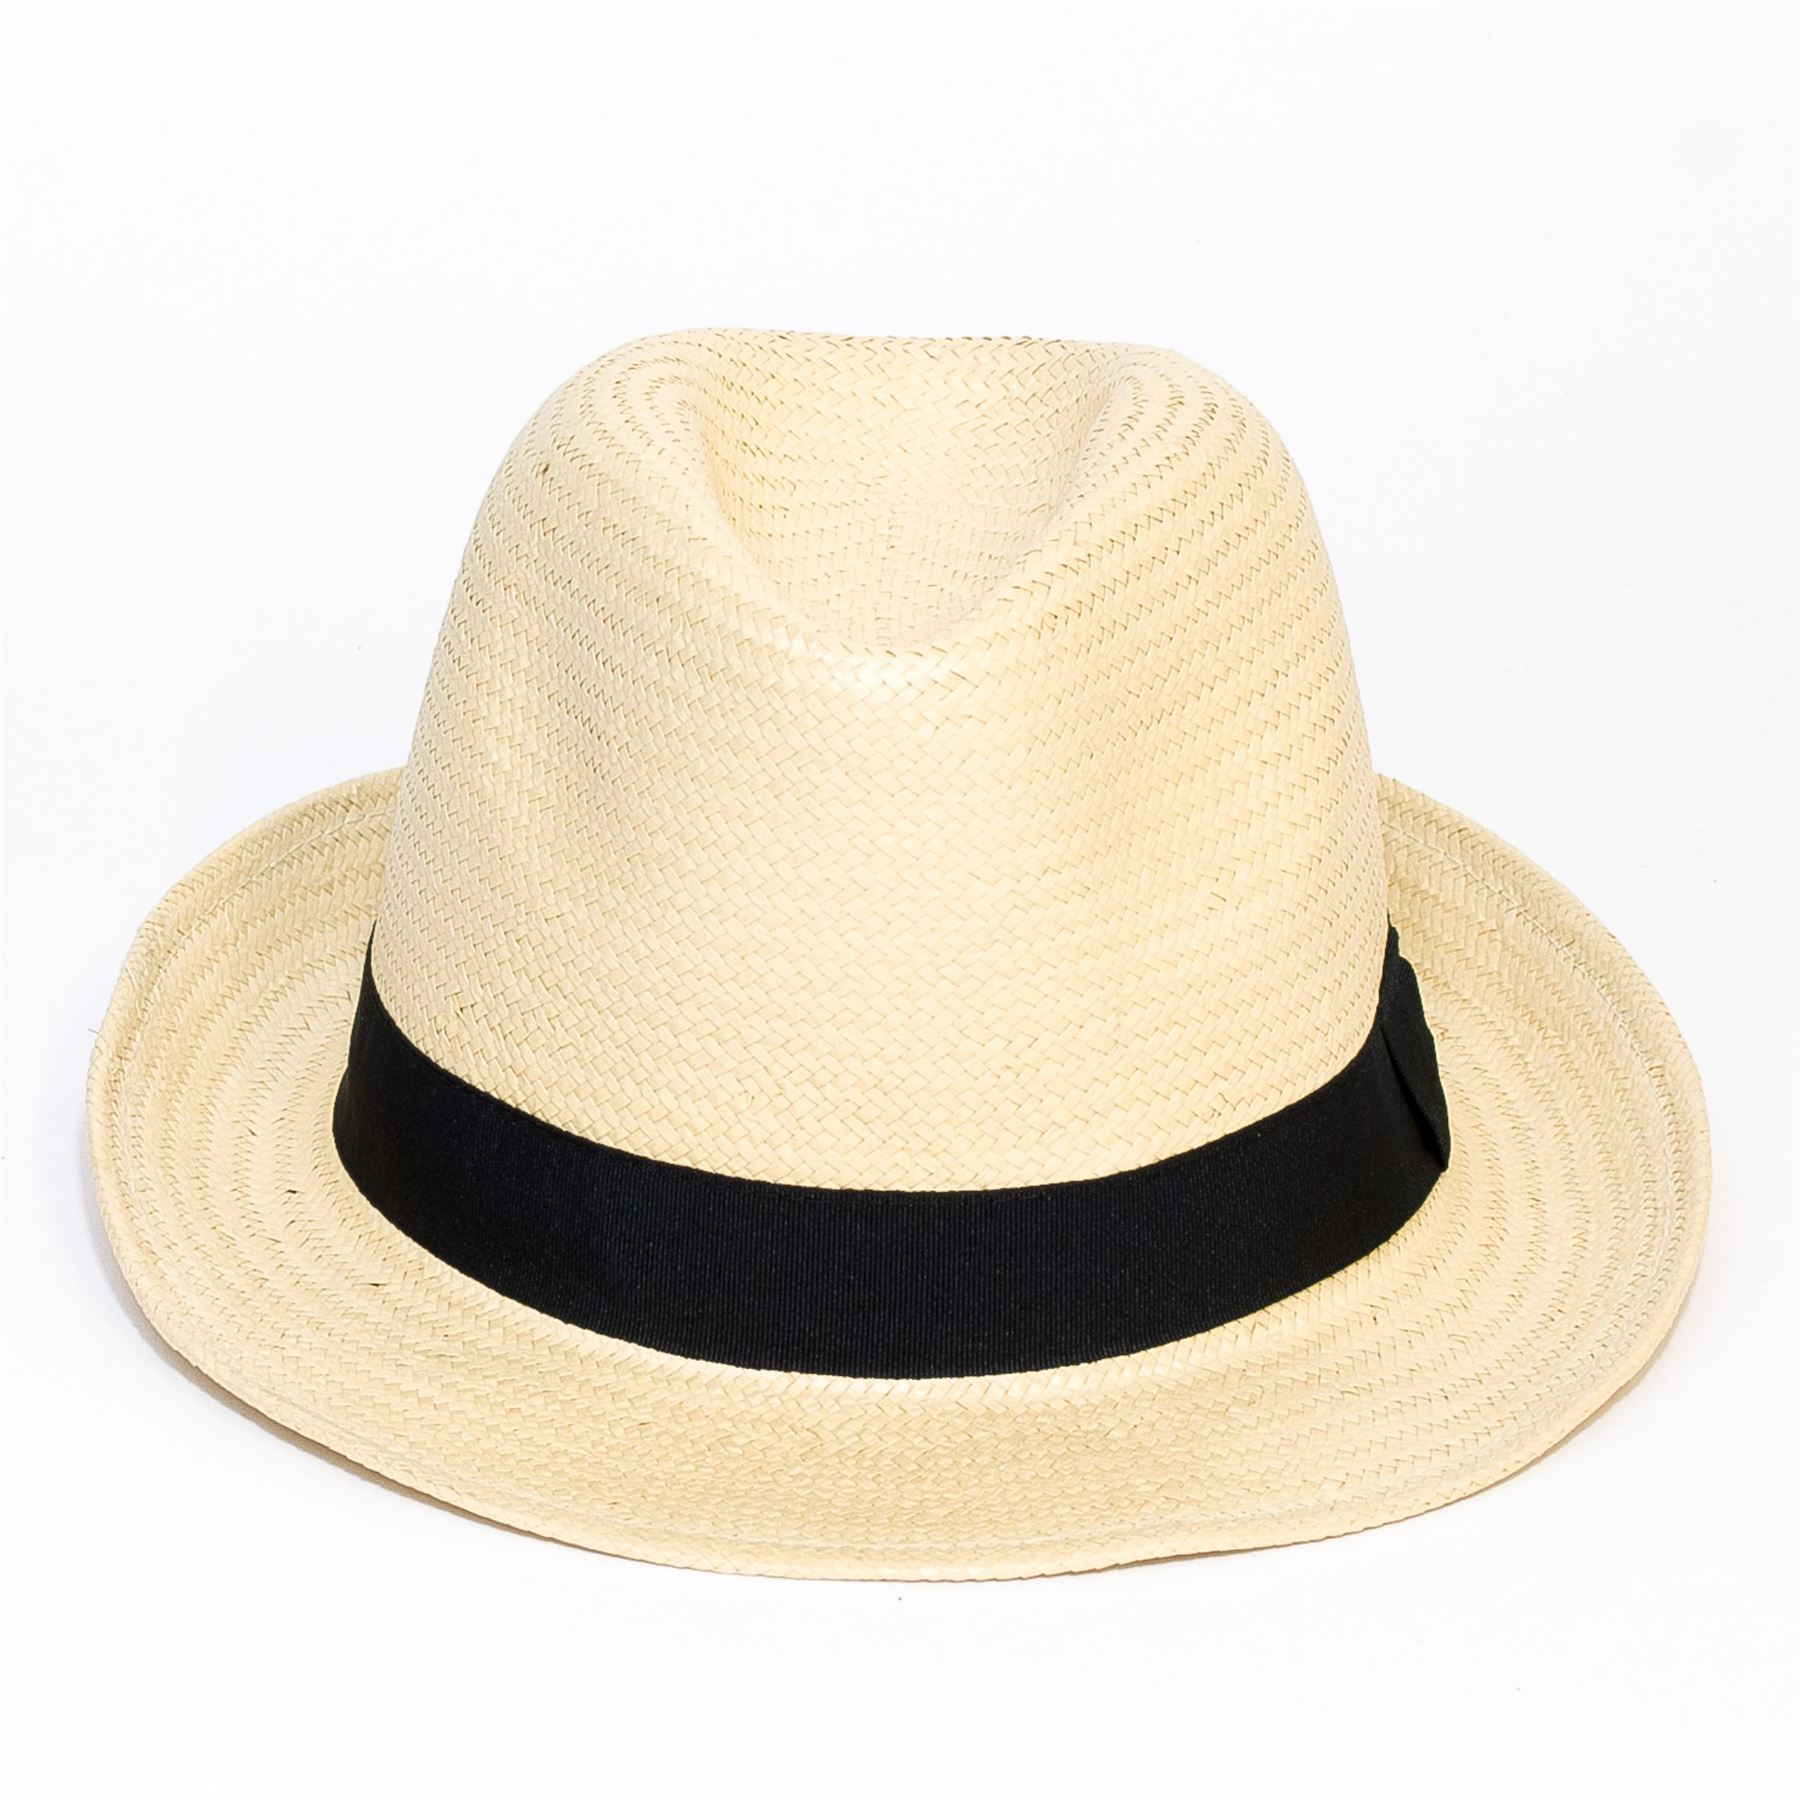 Woven-Straw-Style-Beige-Trilby-Hat thumbnail 5